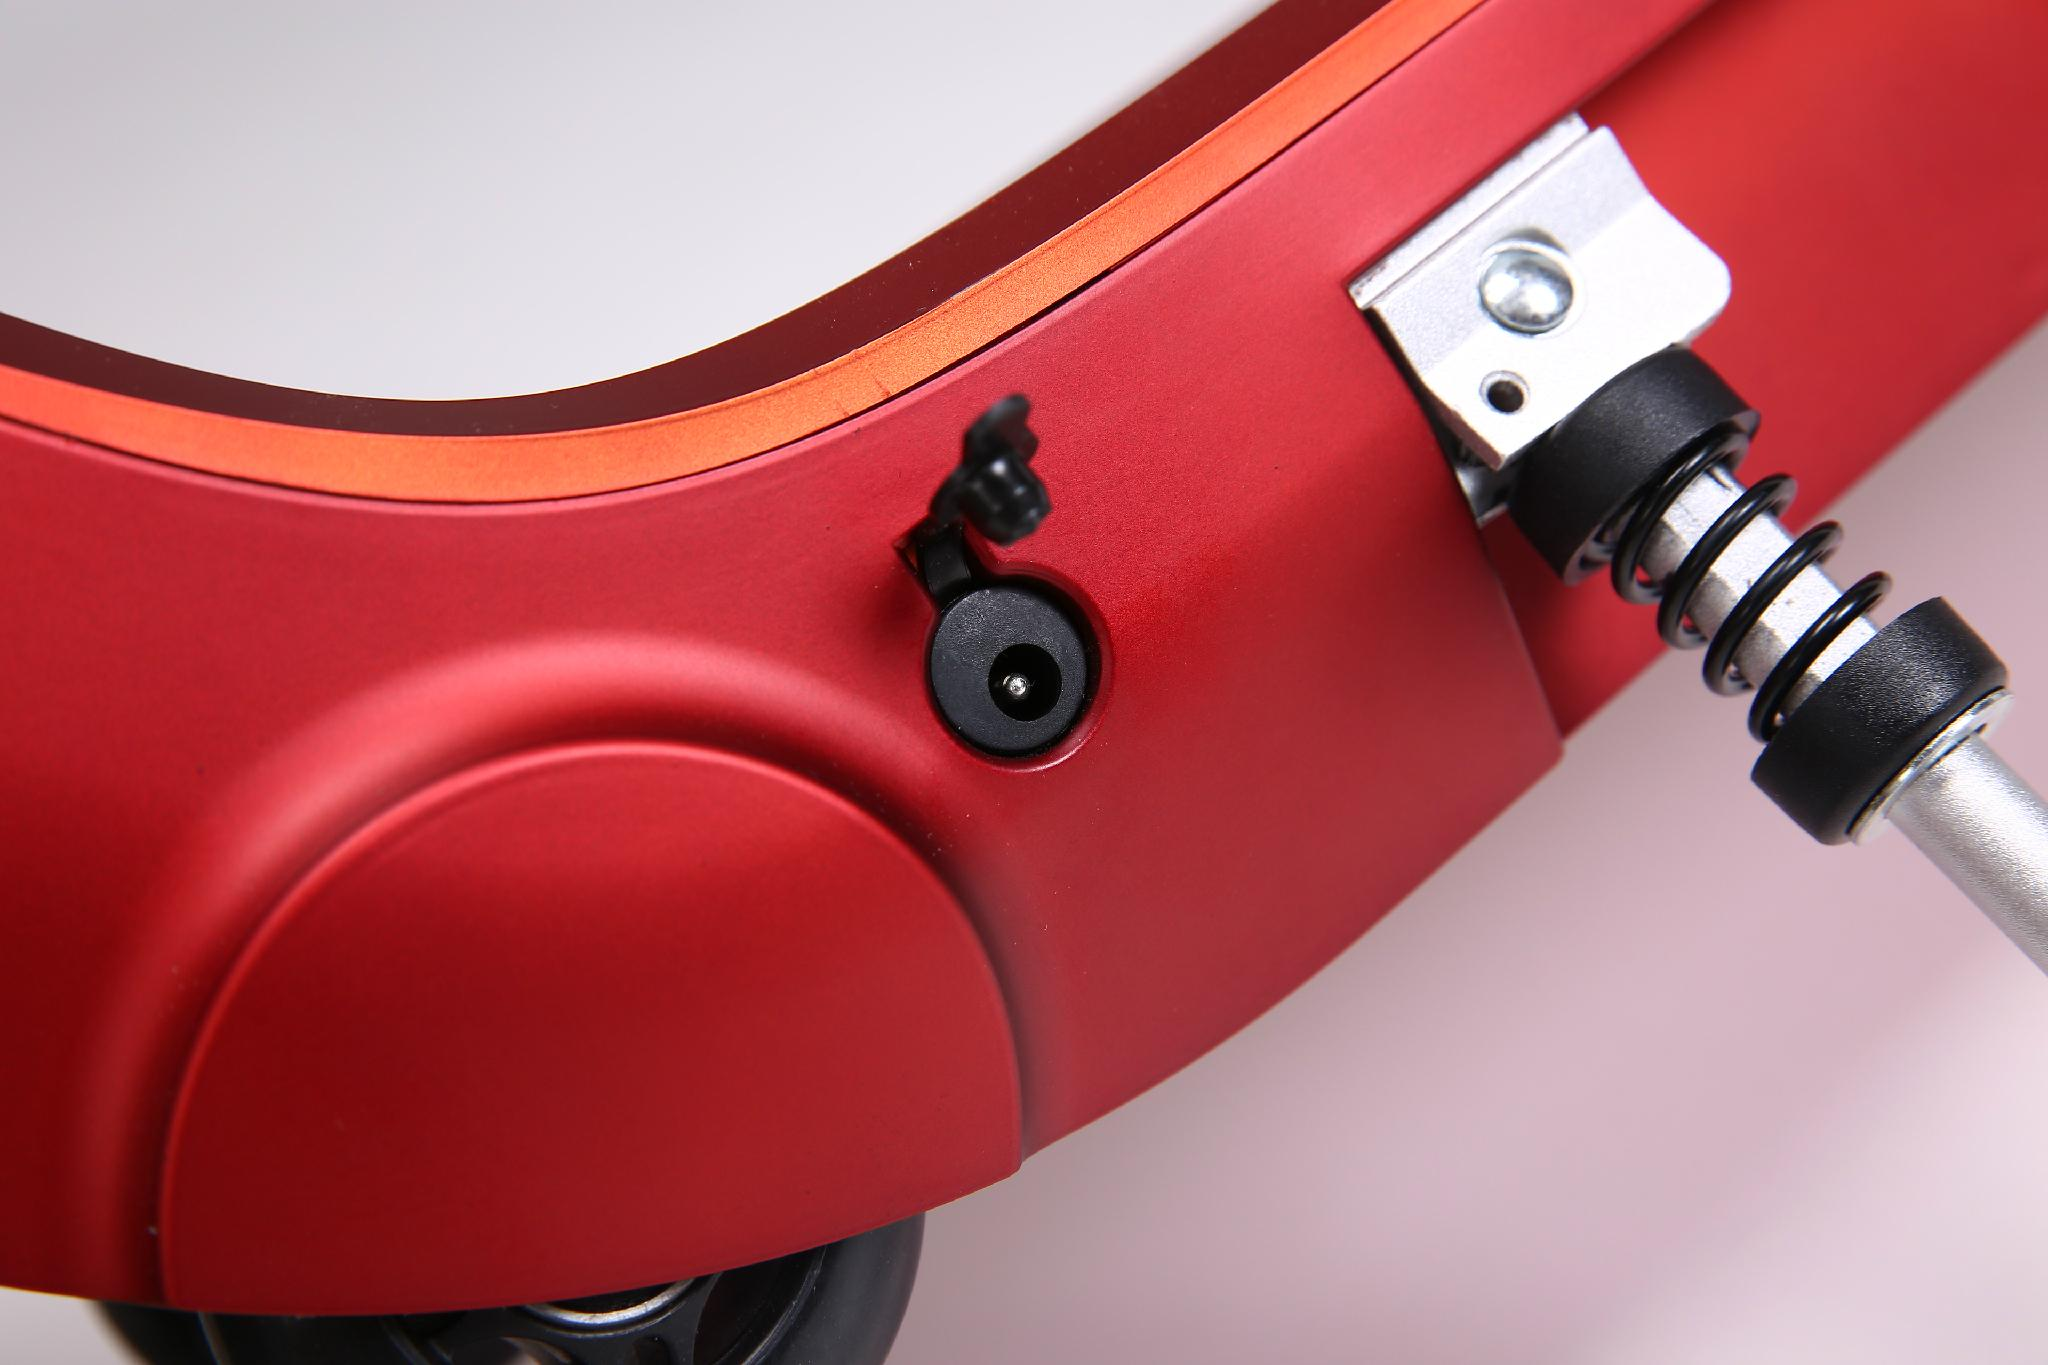 New fashion music Foldable electric scooter L1 music scooter 5